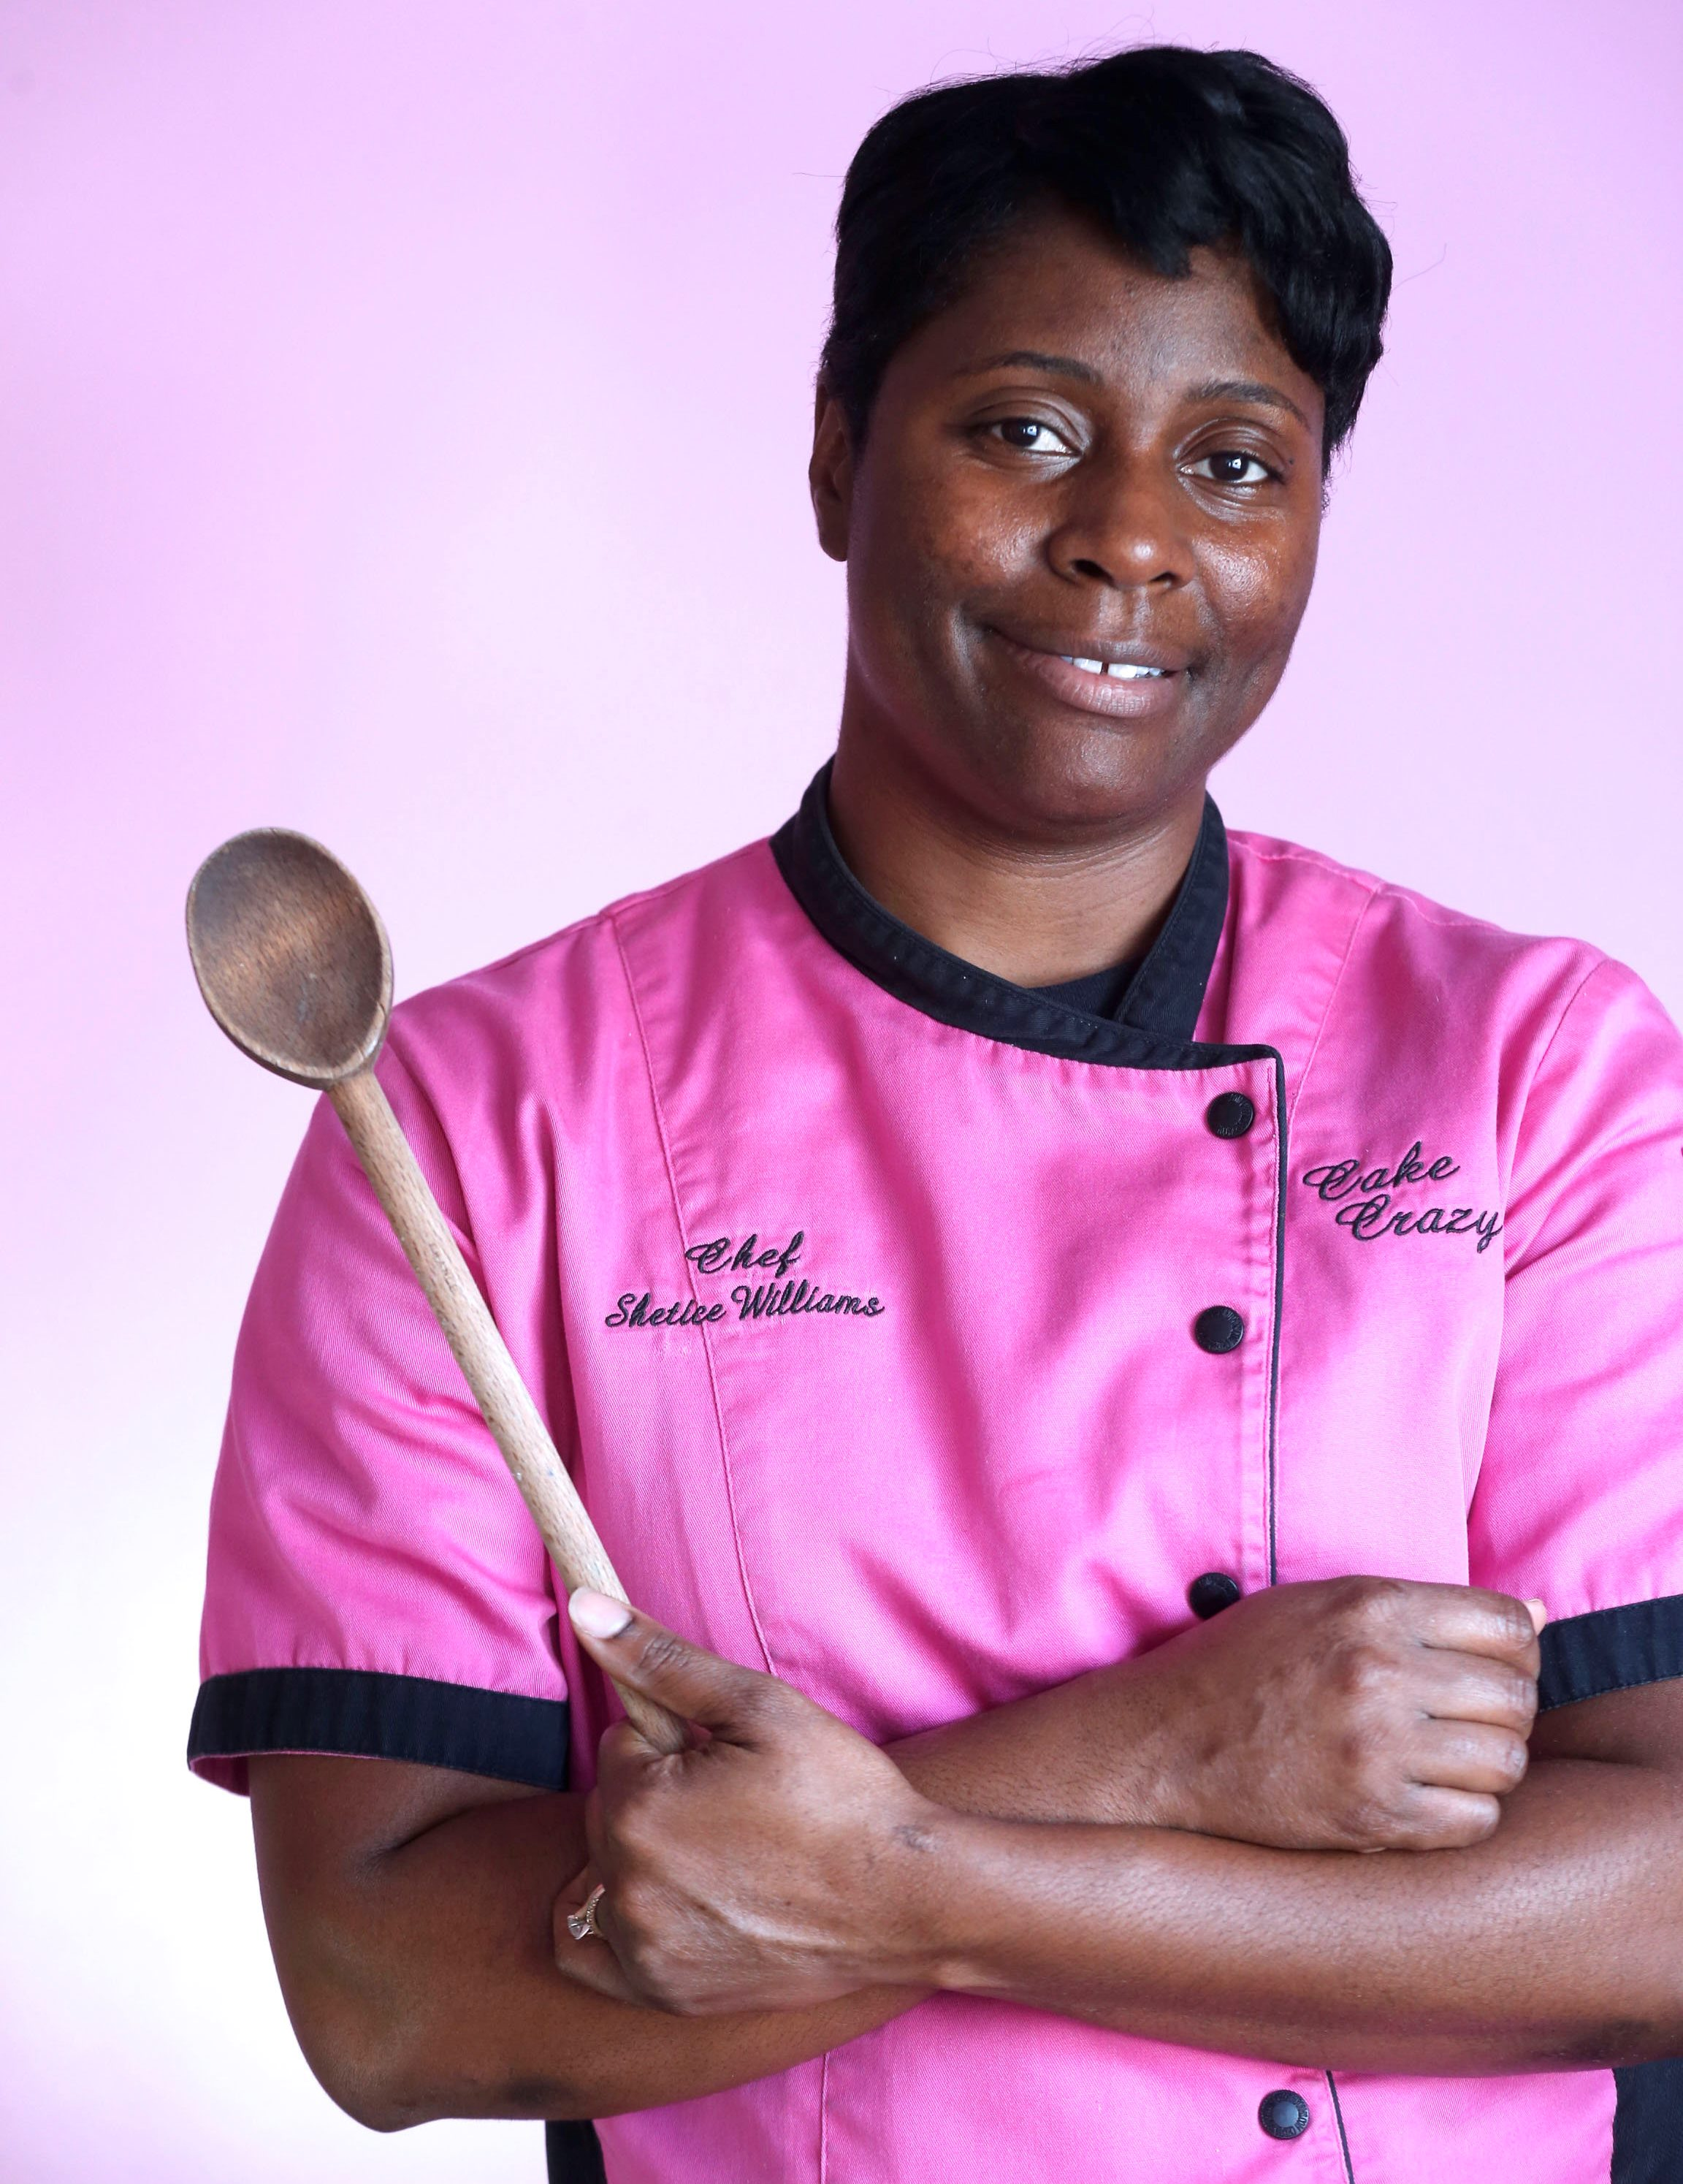 Shetice Williams, a graduate of the Culinary Institute of America and owner of Cake Crazy Bakery and Gourmet Catering on William Street in Cheektowaga. (Robert Kirkham/Buffalo News)